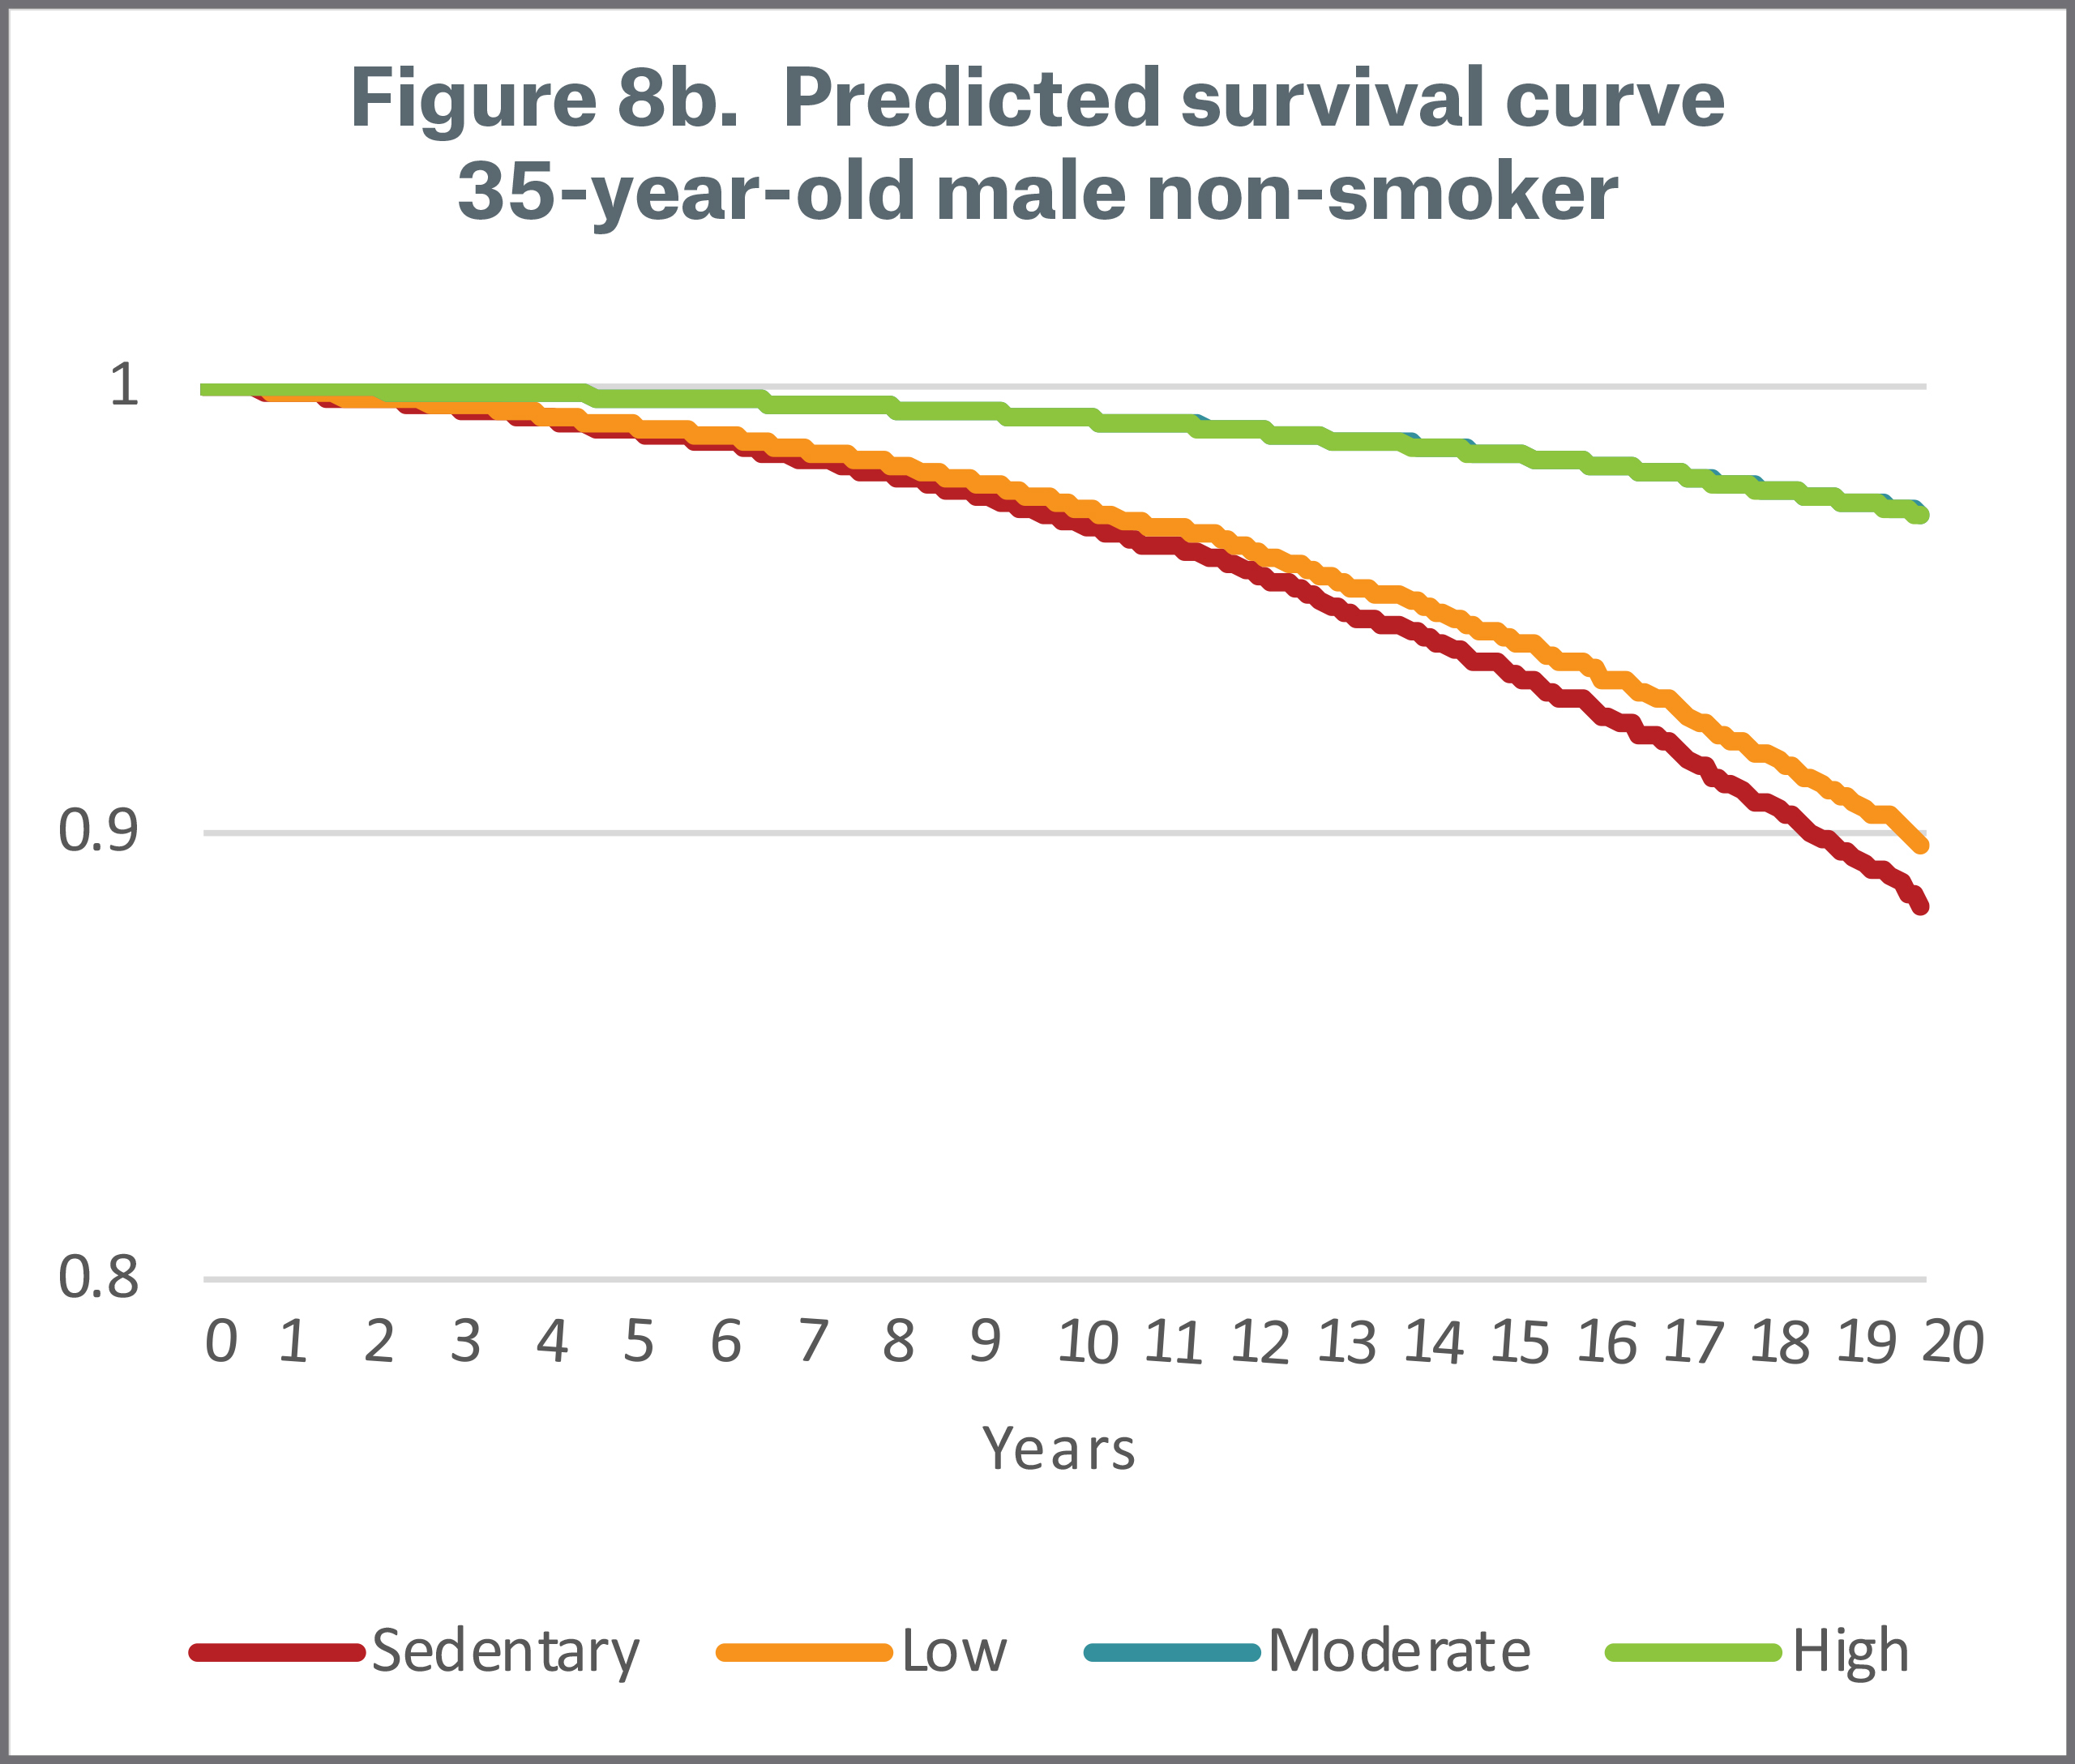 Figure 8b Predicted Survival Curve 35 year old Male non-smoker